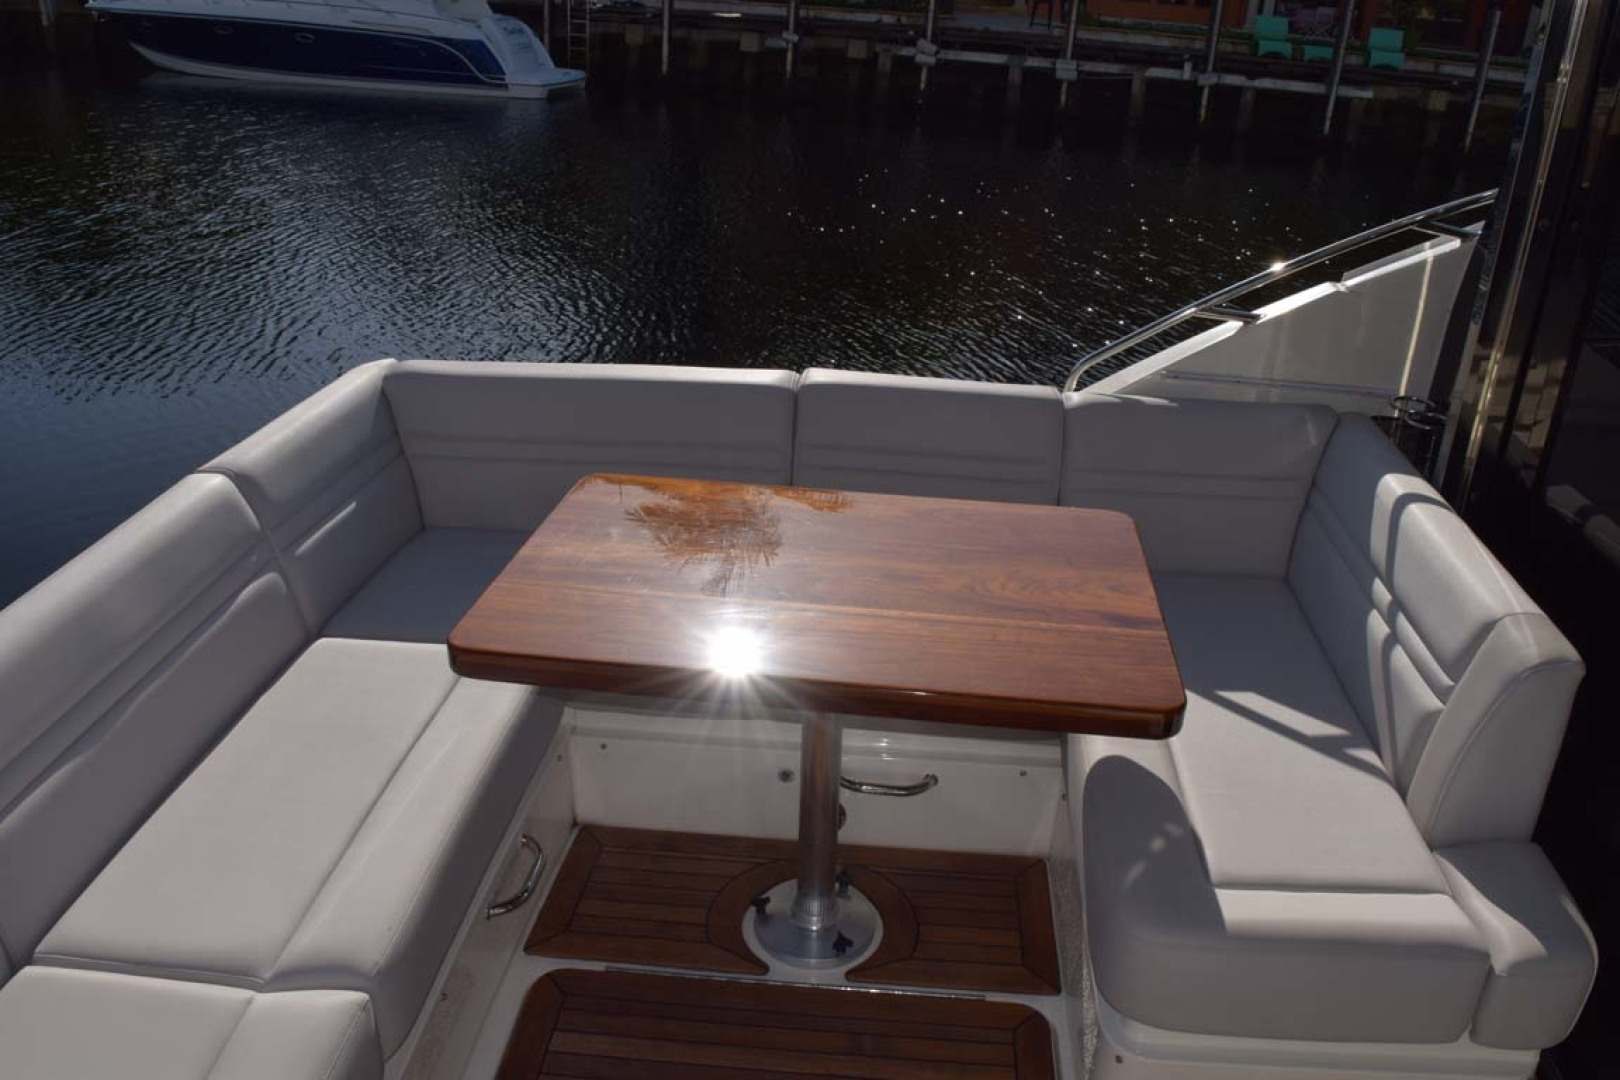 Sea Ray-510 Sundancer 2015 -Ft Lauderdale-Florida-United States-Aft Deck Seating With Veneer Table-1189913 | Thumbnail